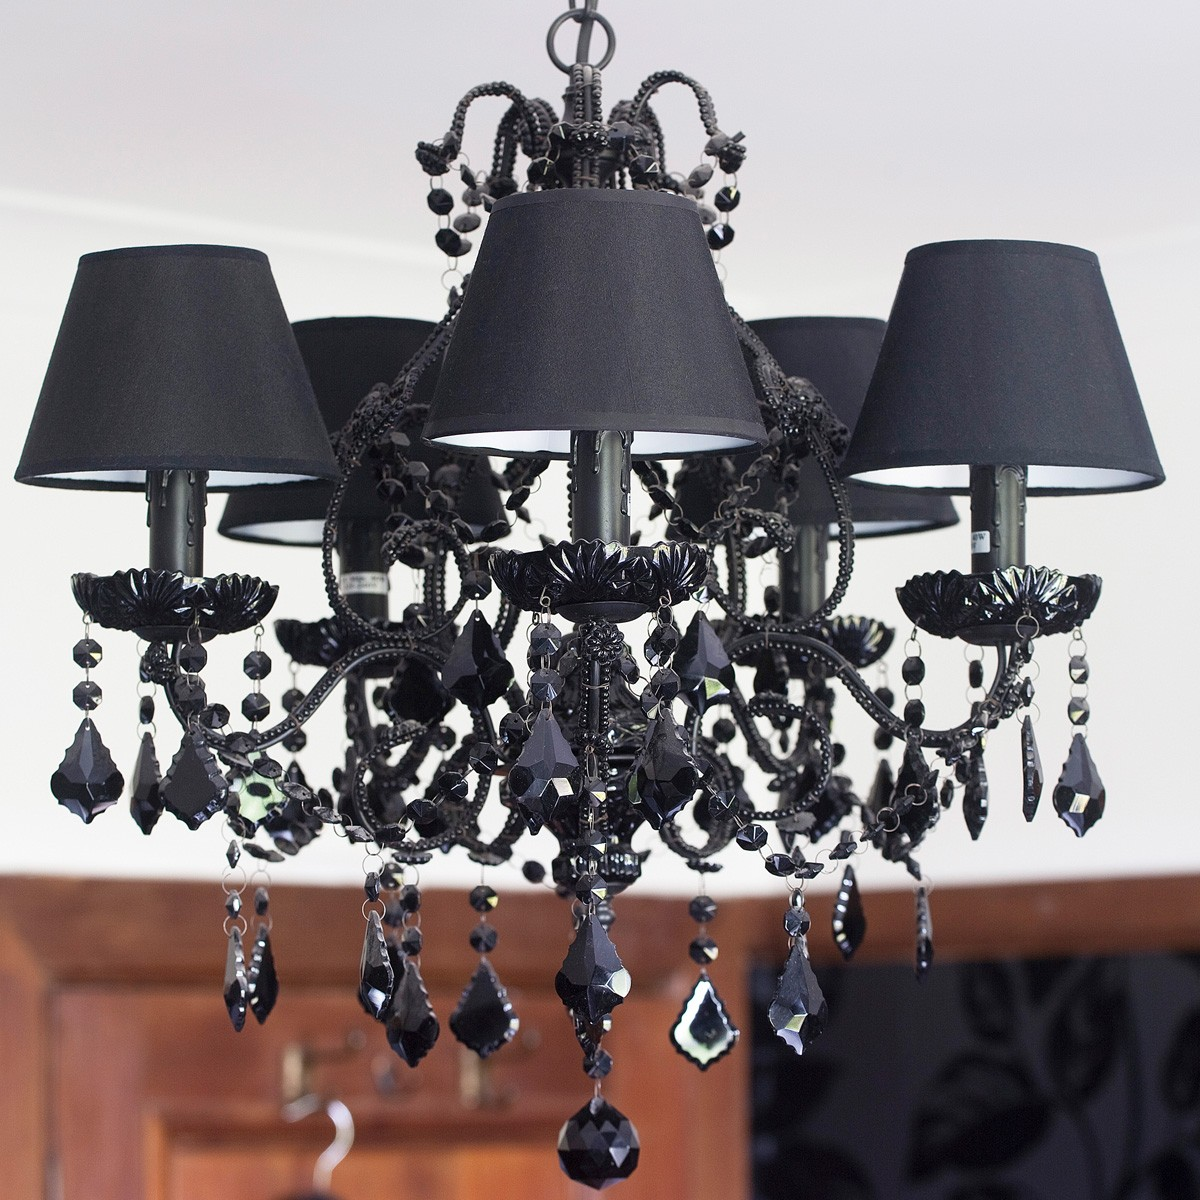 y Rexy Black French Chandelier French Bedroom pany